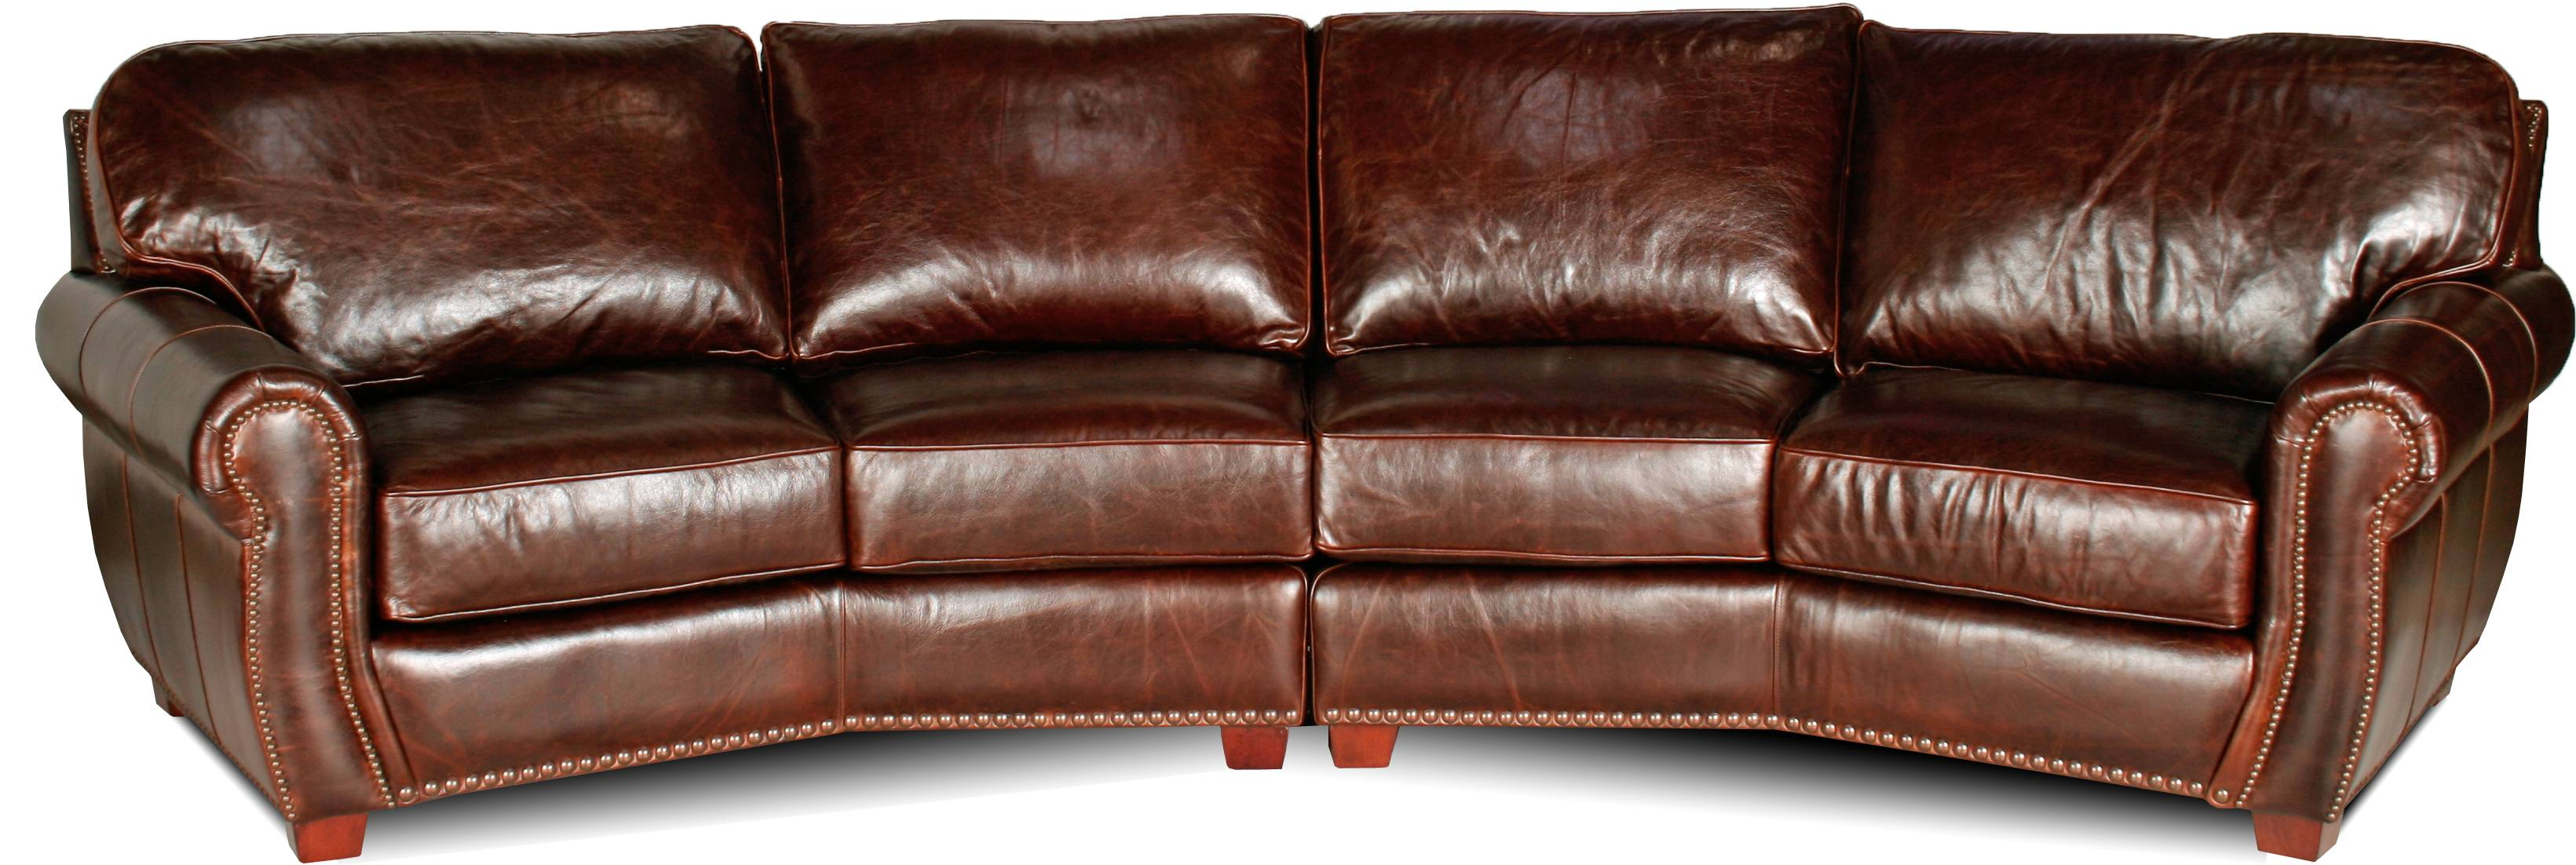 Berkshire leather furniture for Leather furniture